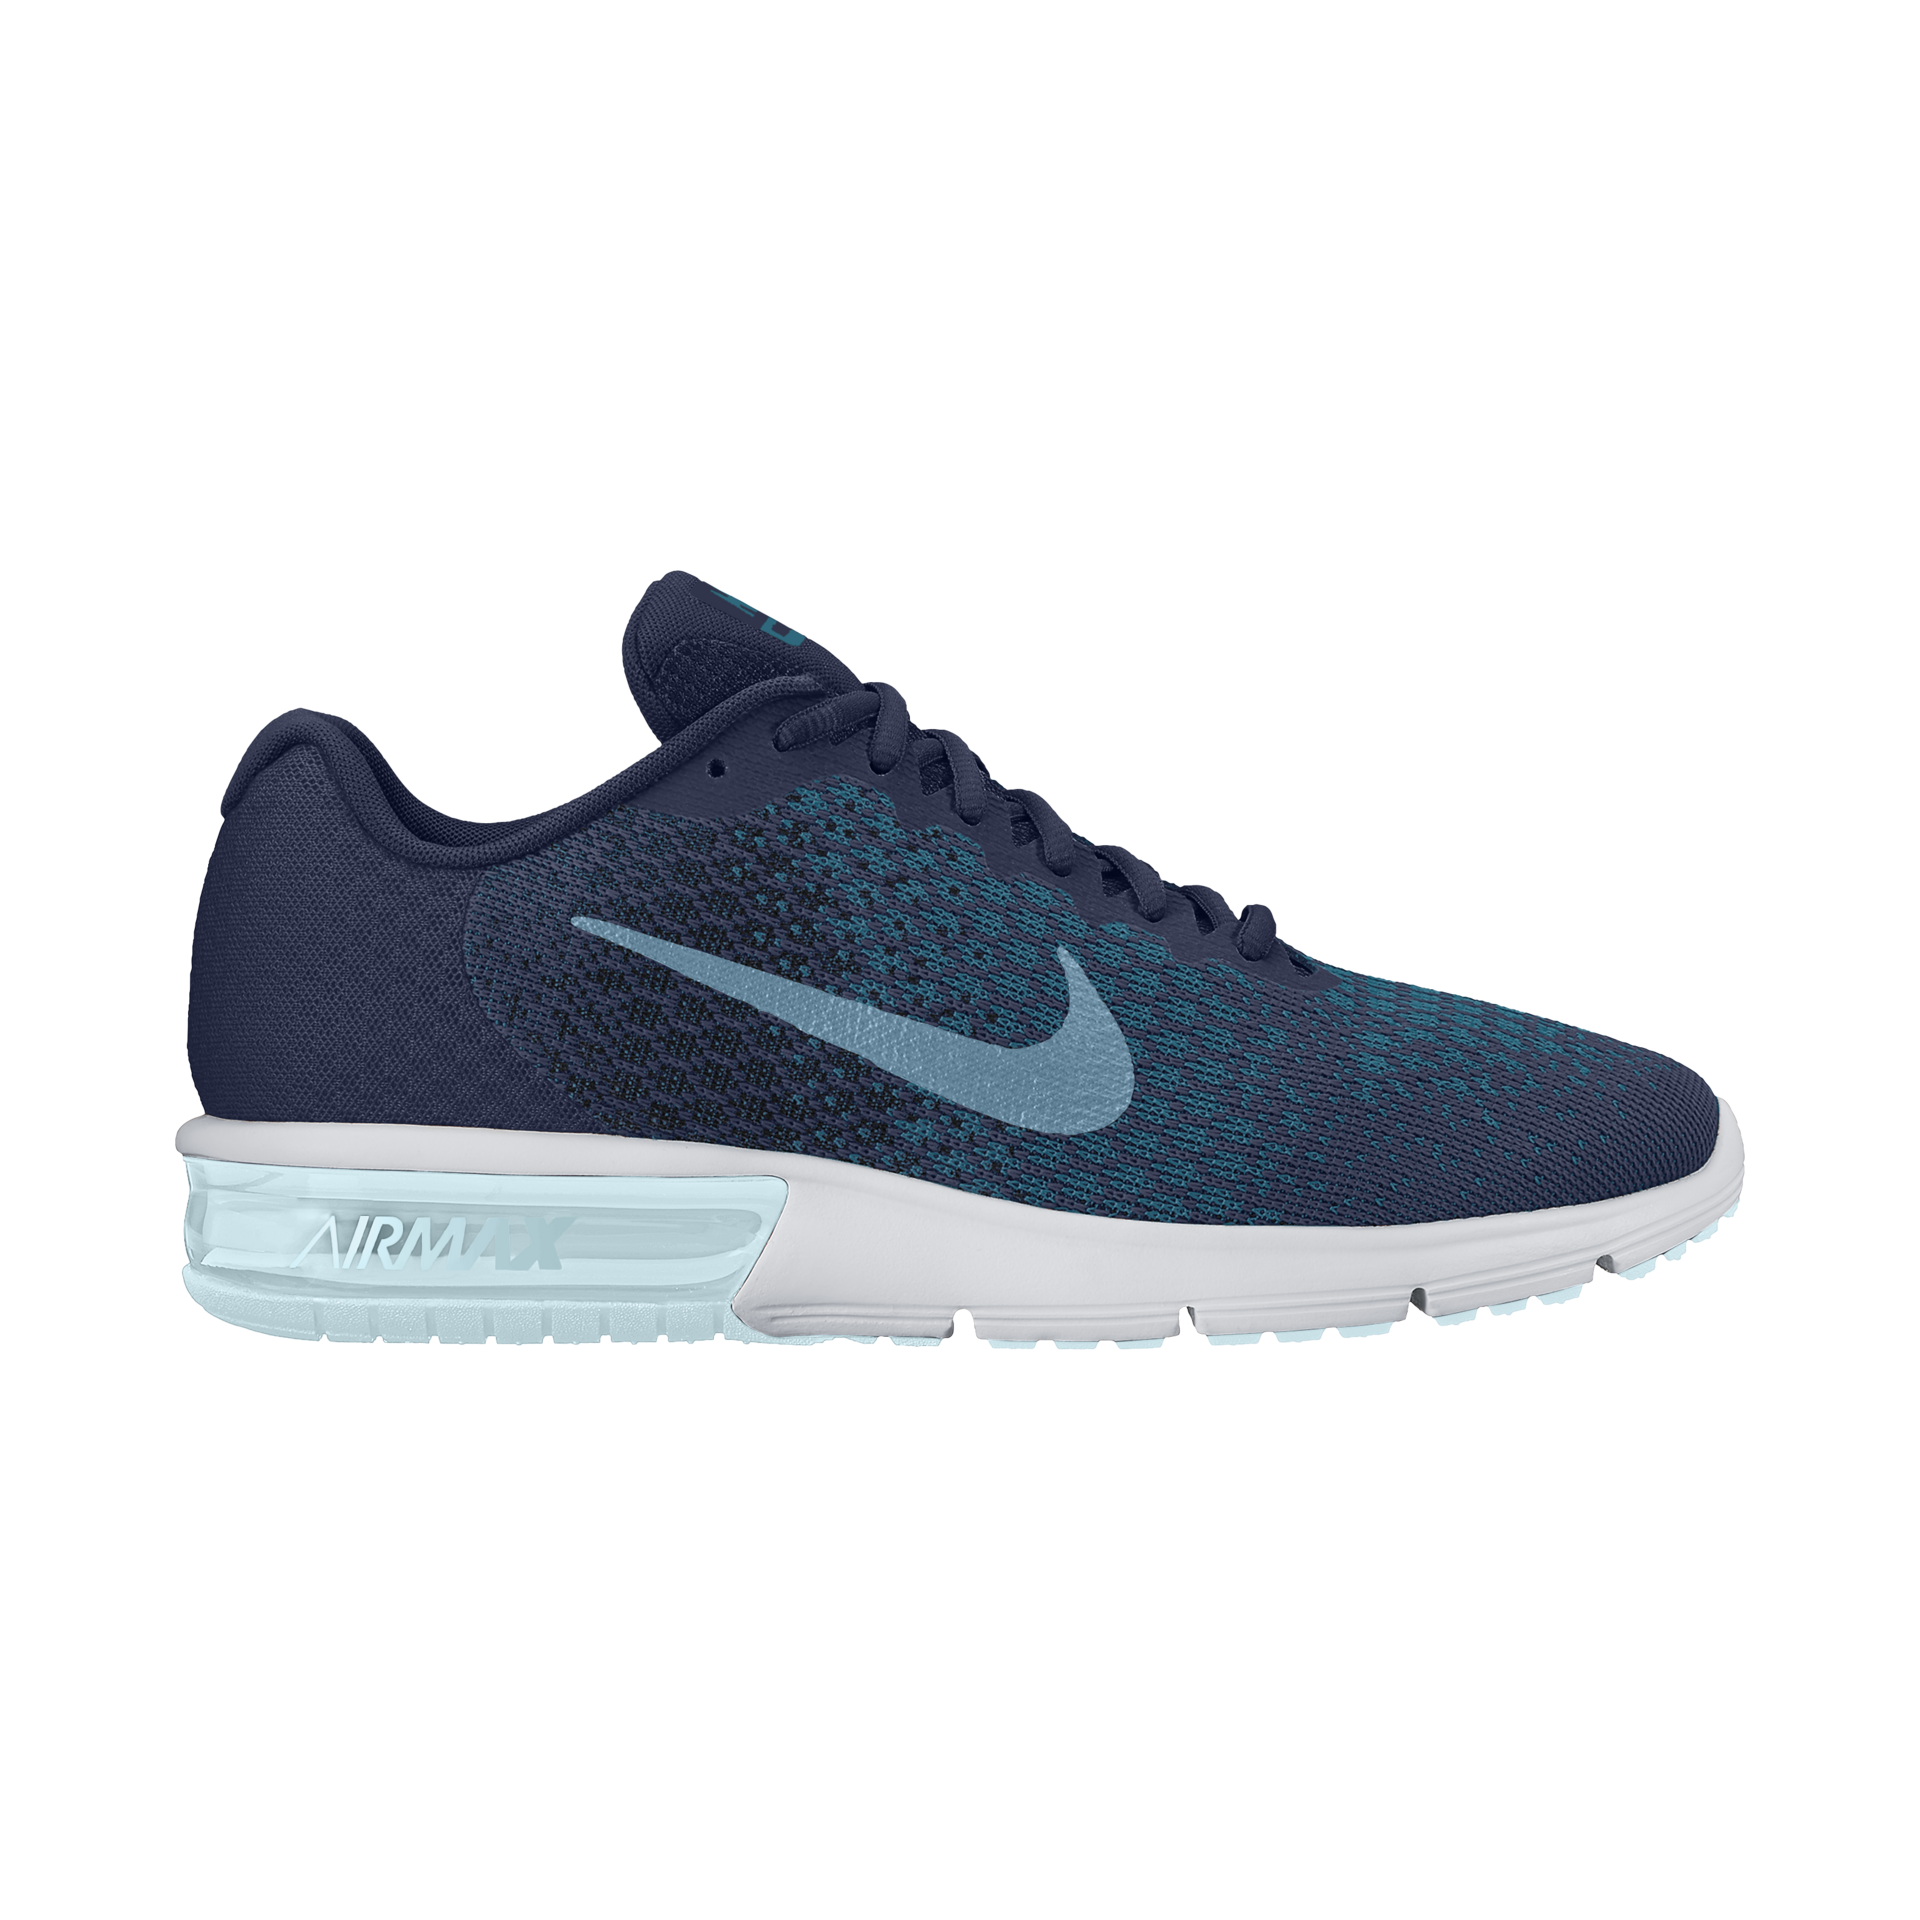 8fcf47751cf NIKE AIR MAX SEQUENT 2 MENS - Poobie Naidoos